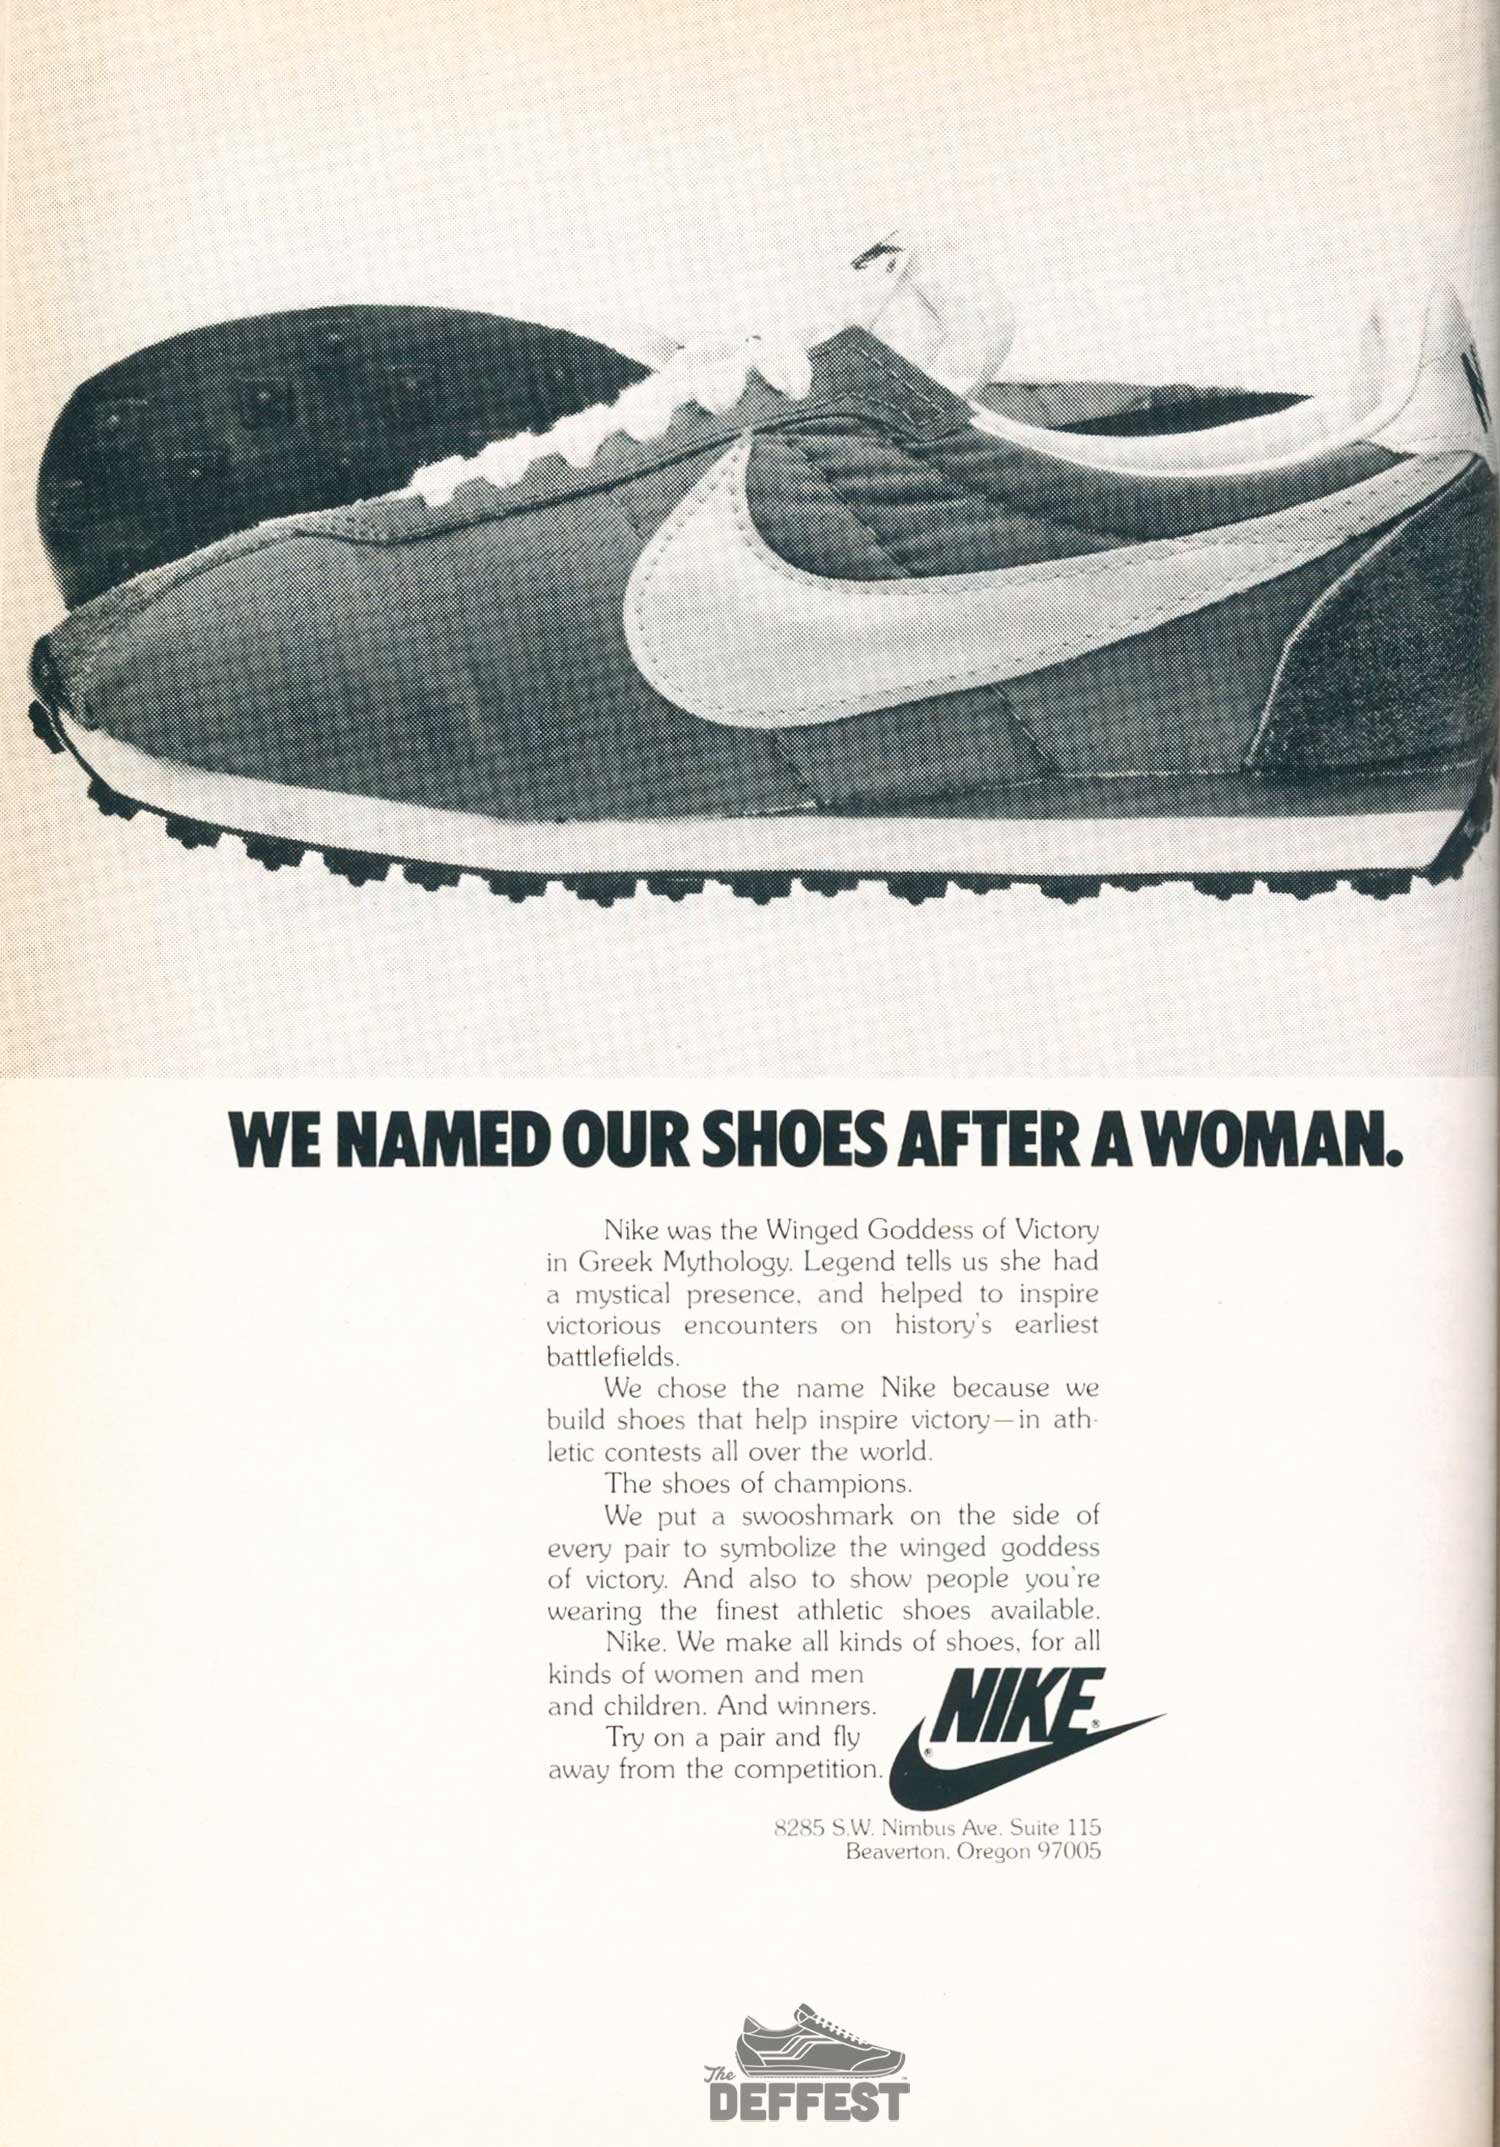 Nike The Deffest A Vintage And Retro Sneaker Blog Vintage Ads